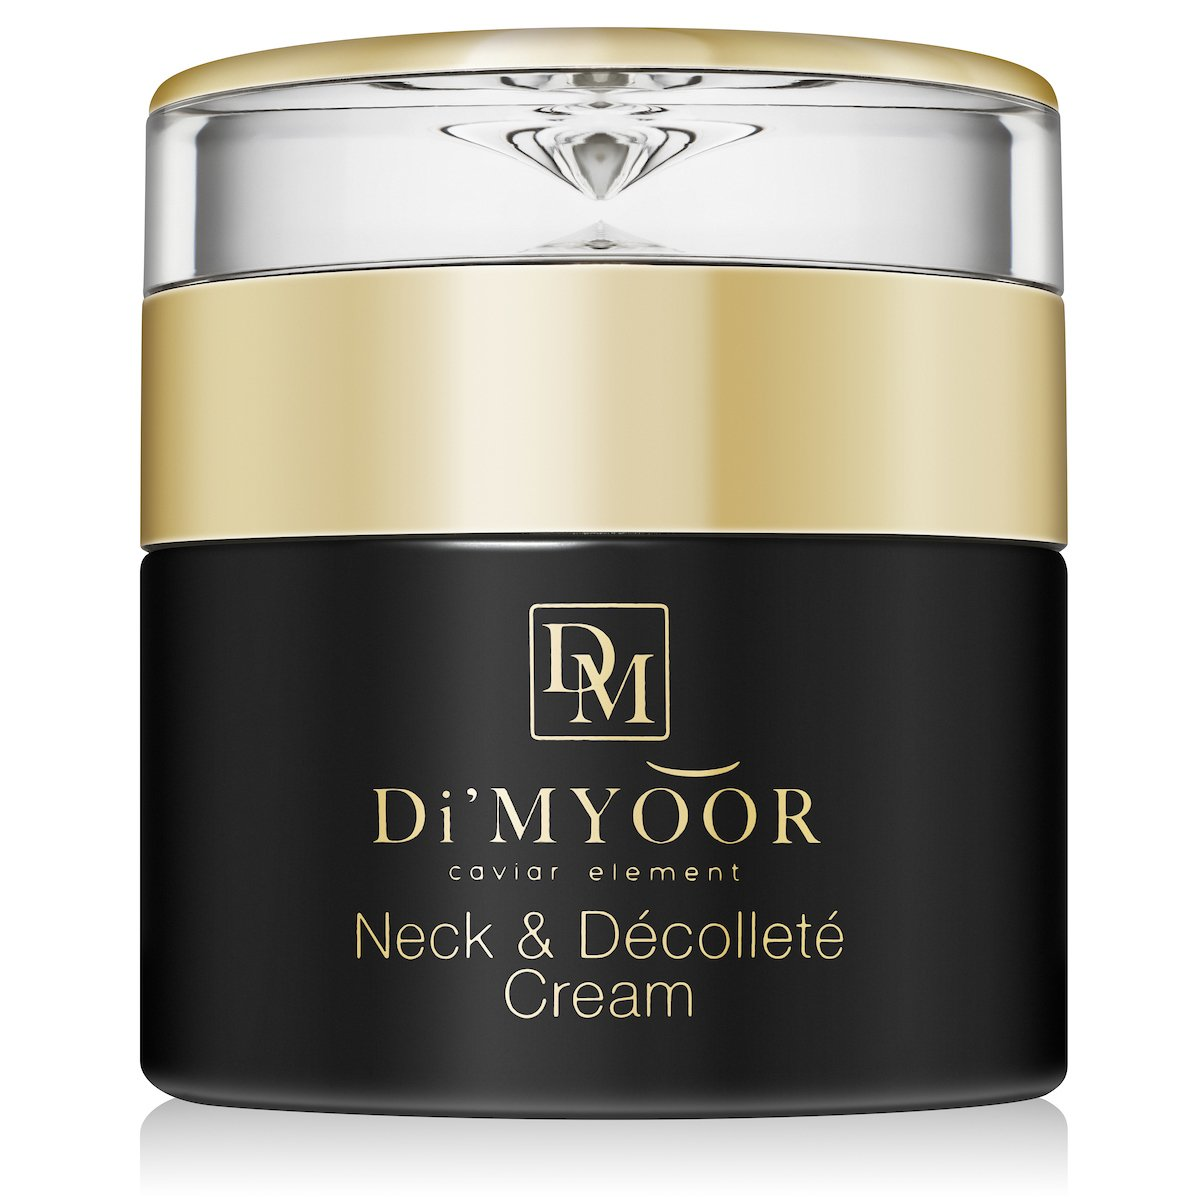 Di'myoor Neck & Dcollet Firming Cream with Caviar Element, 3-in-1: Tightens Sagging, Loose Skin, Retains Youthful Glow, Enriched with Vitamins, Green Tea, Almond Oil, Dmae, Glycolic Acid, 1.7 oz.